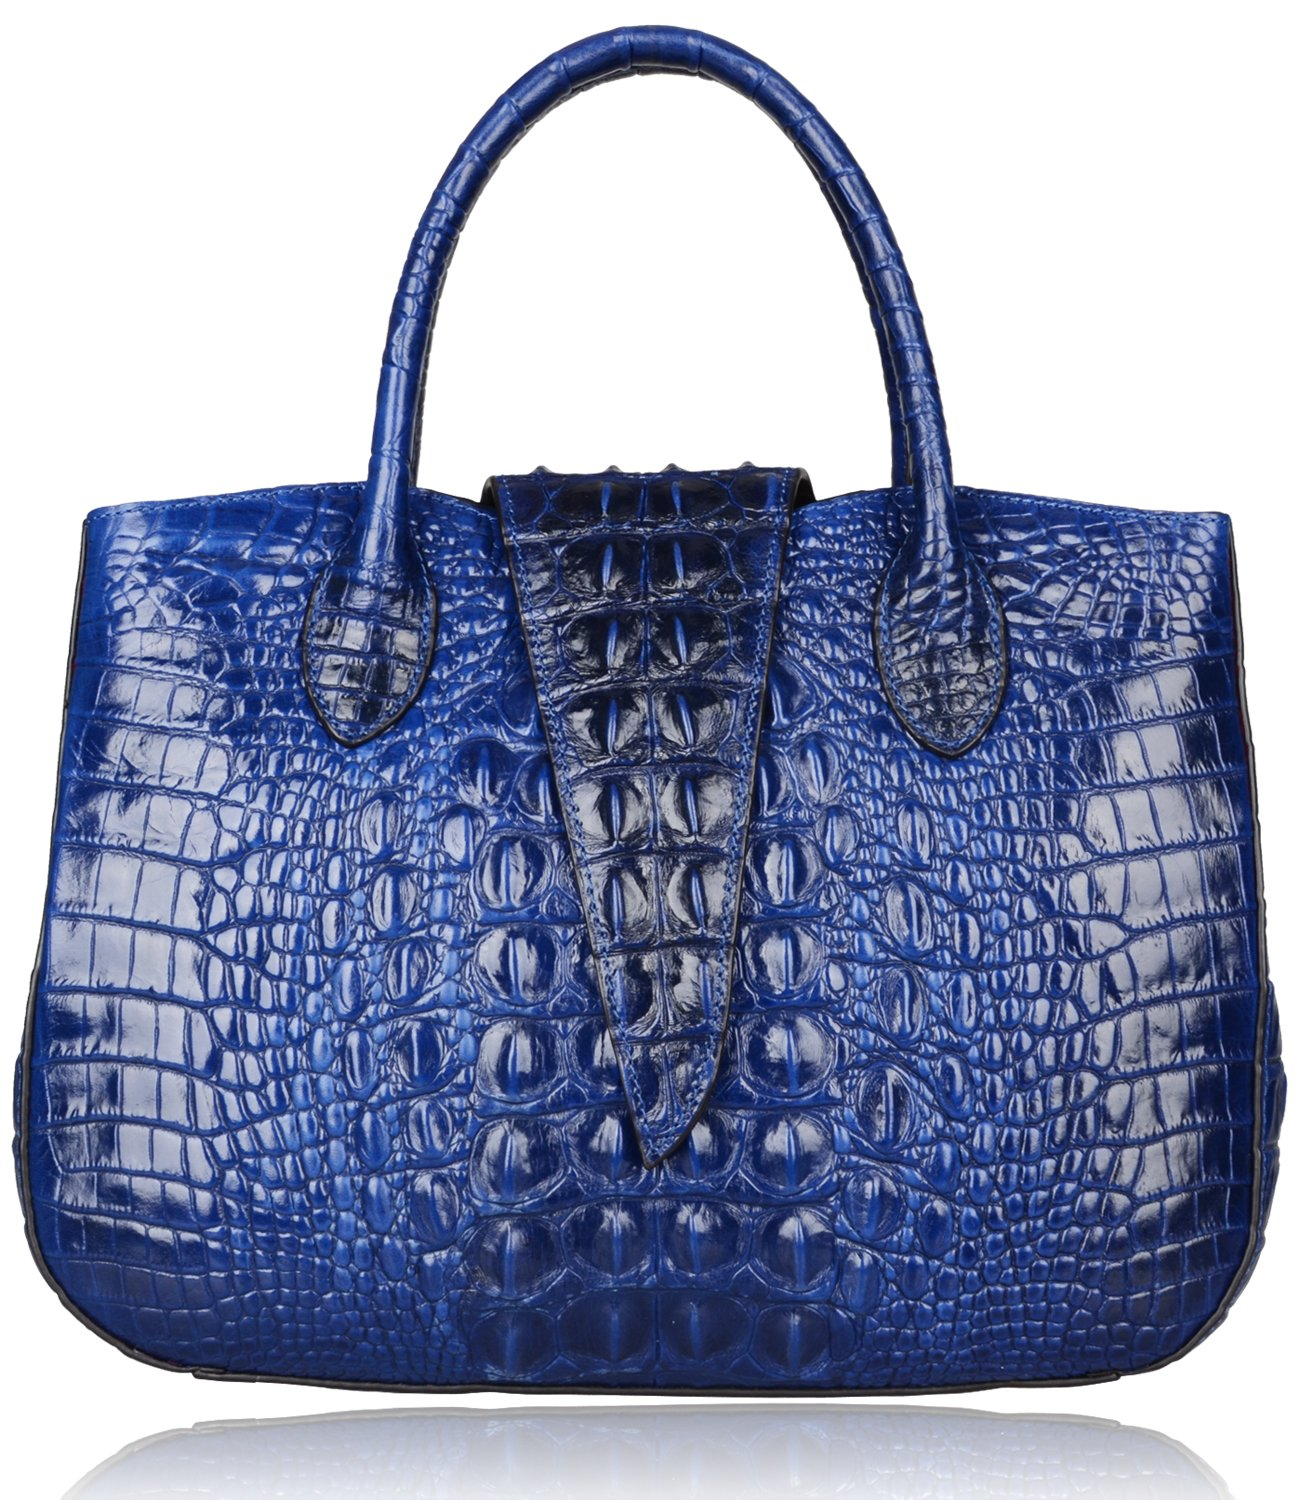 Pijushi 22201 Classic Ladies Crocodile Embossed Leather Satchel Bag Women's Top-handle Handbags (Blue) by PIJUSHI